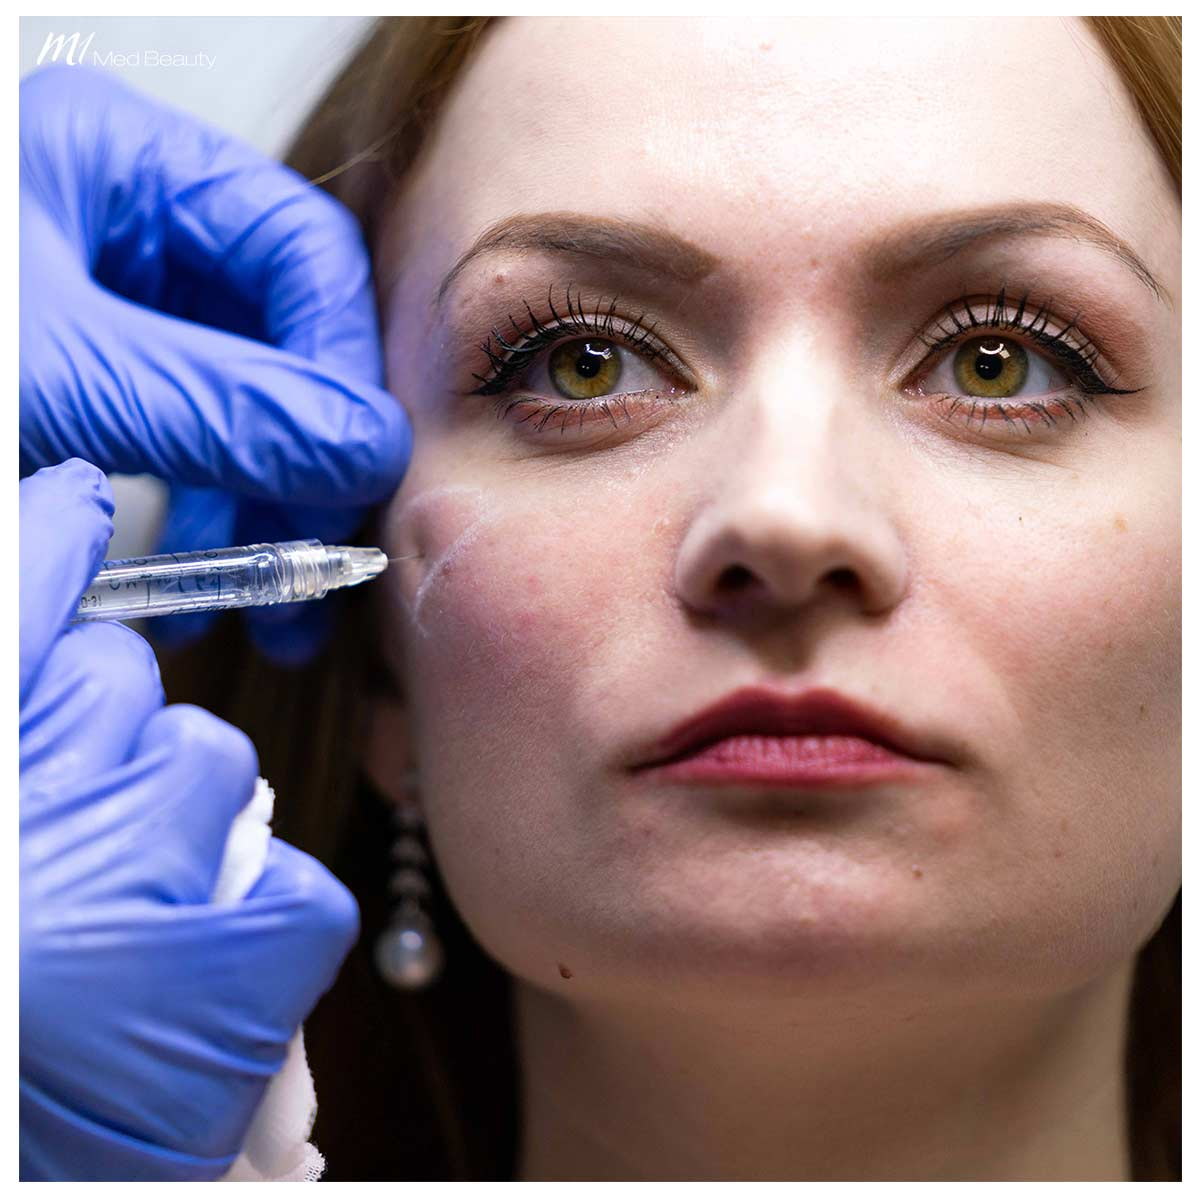 cheek filler treatment at M1 Med Beauty- injection